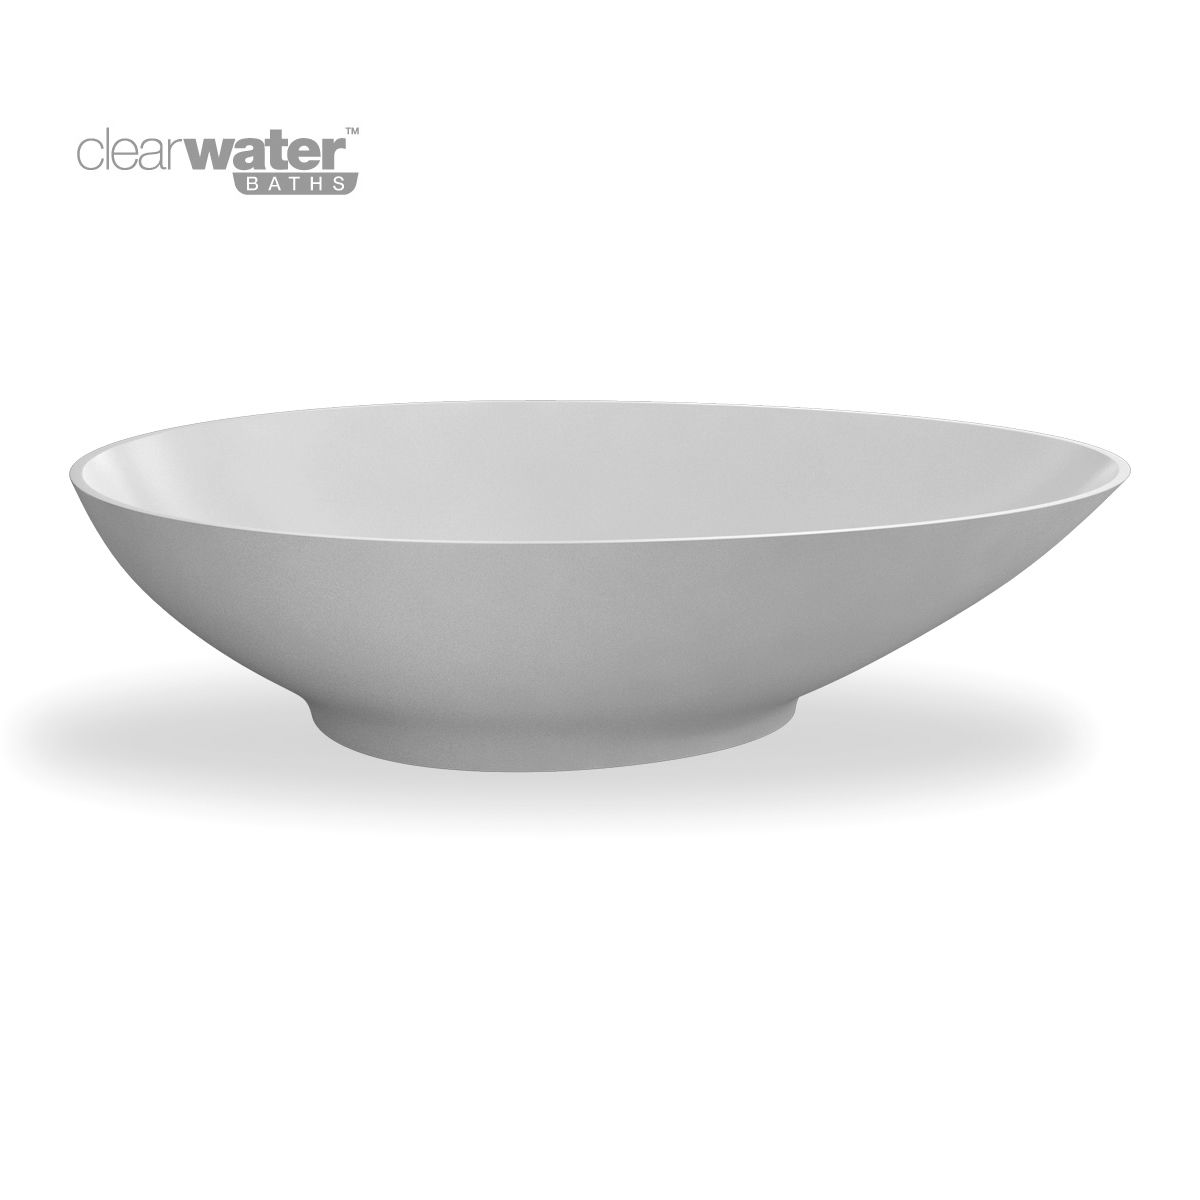 Clearwater teardrop petite clear stone bath uk bathrooms for Small baths 1200